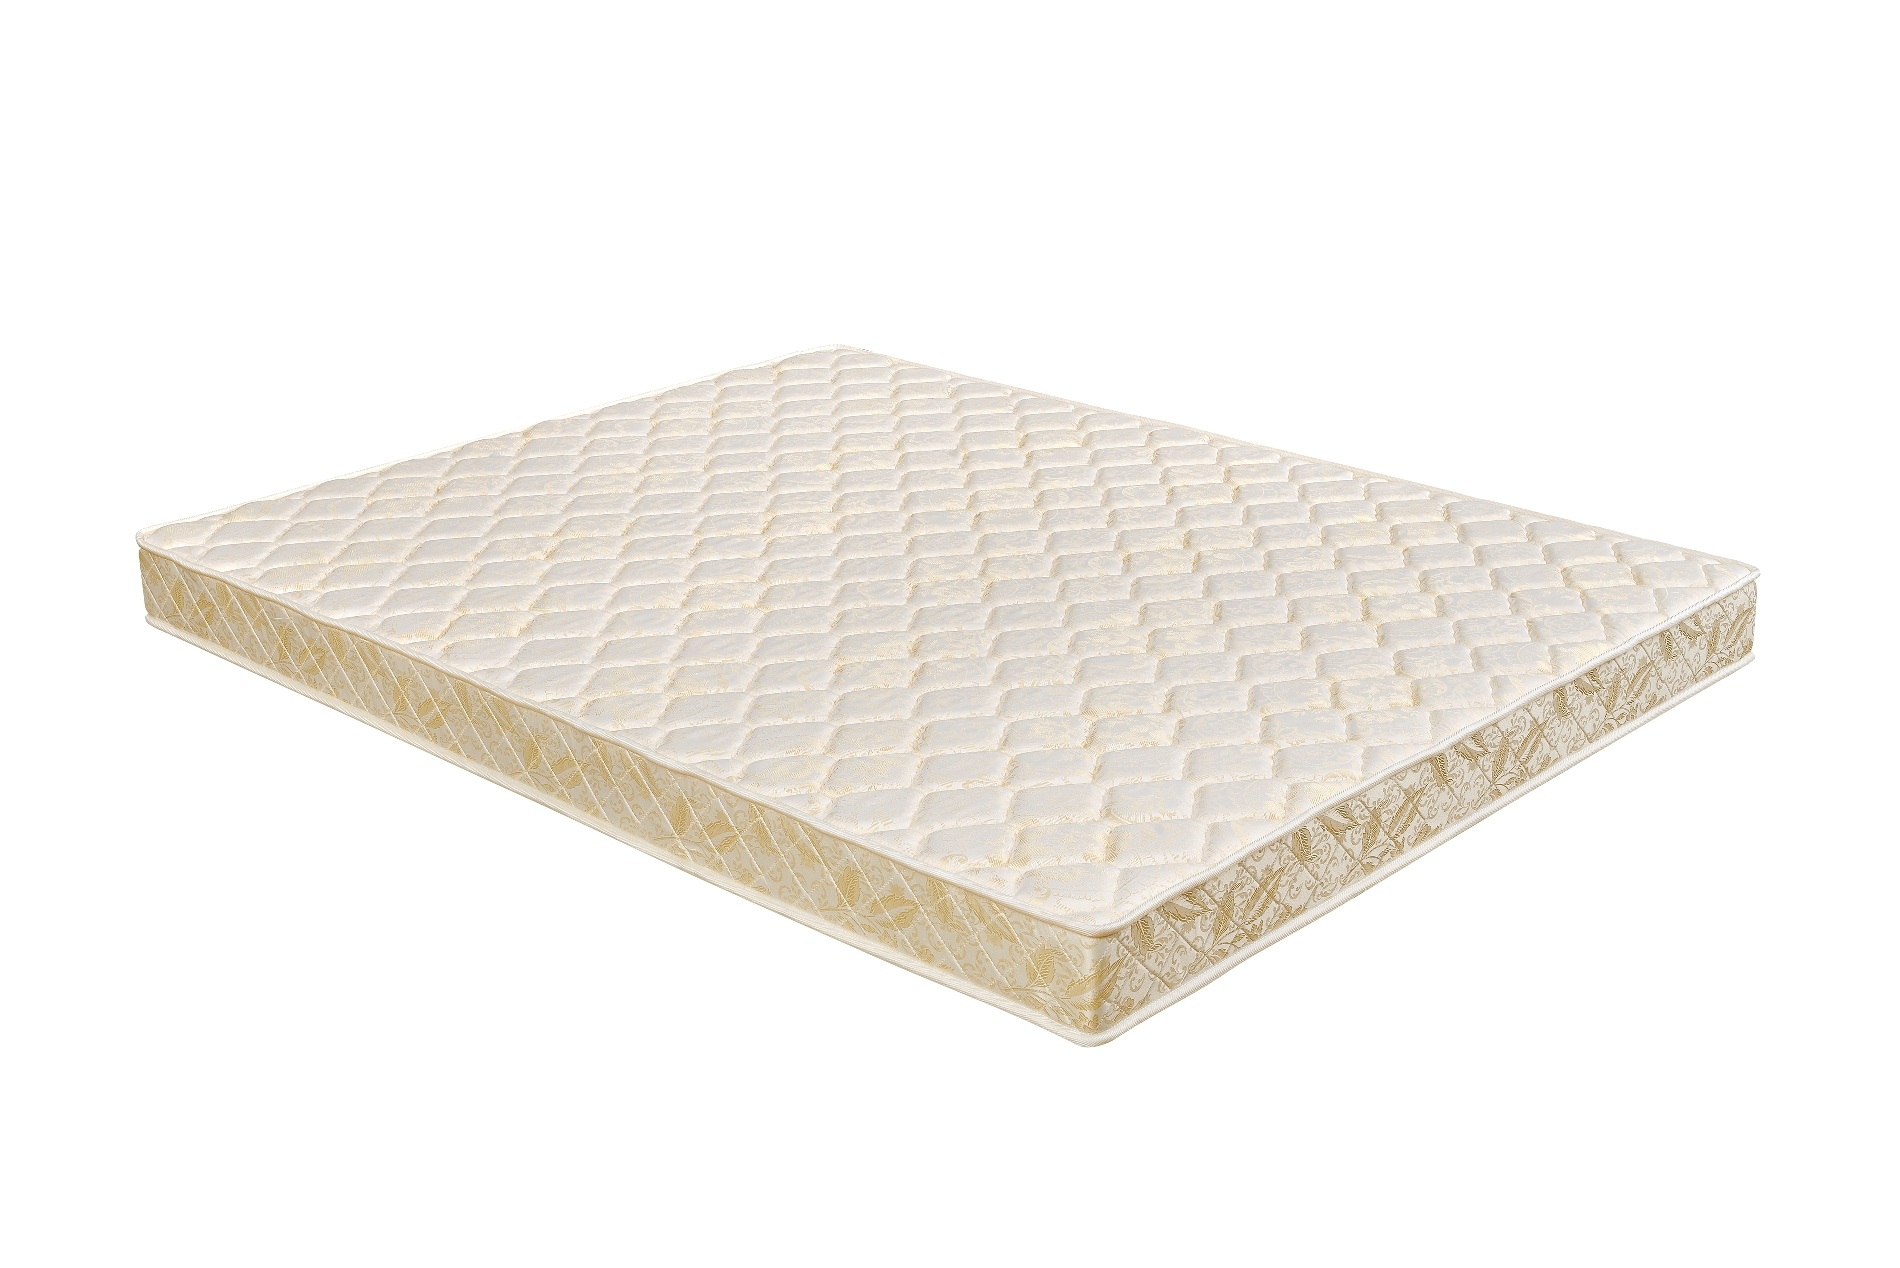 Mattress In Canada Mattress Sea Horse Mattress Household Products Vancouver